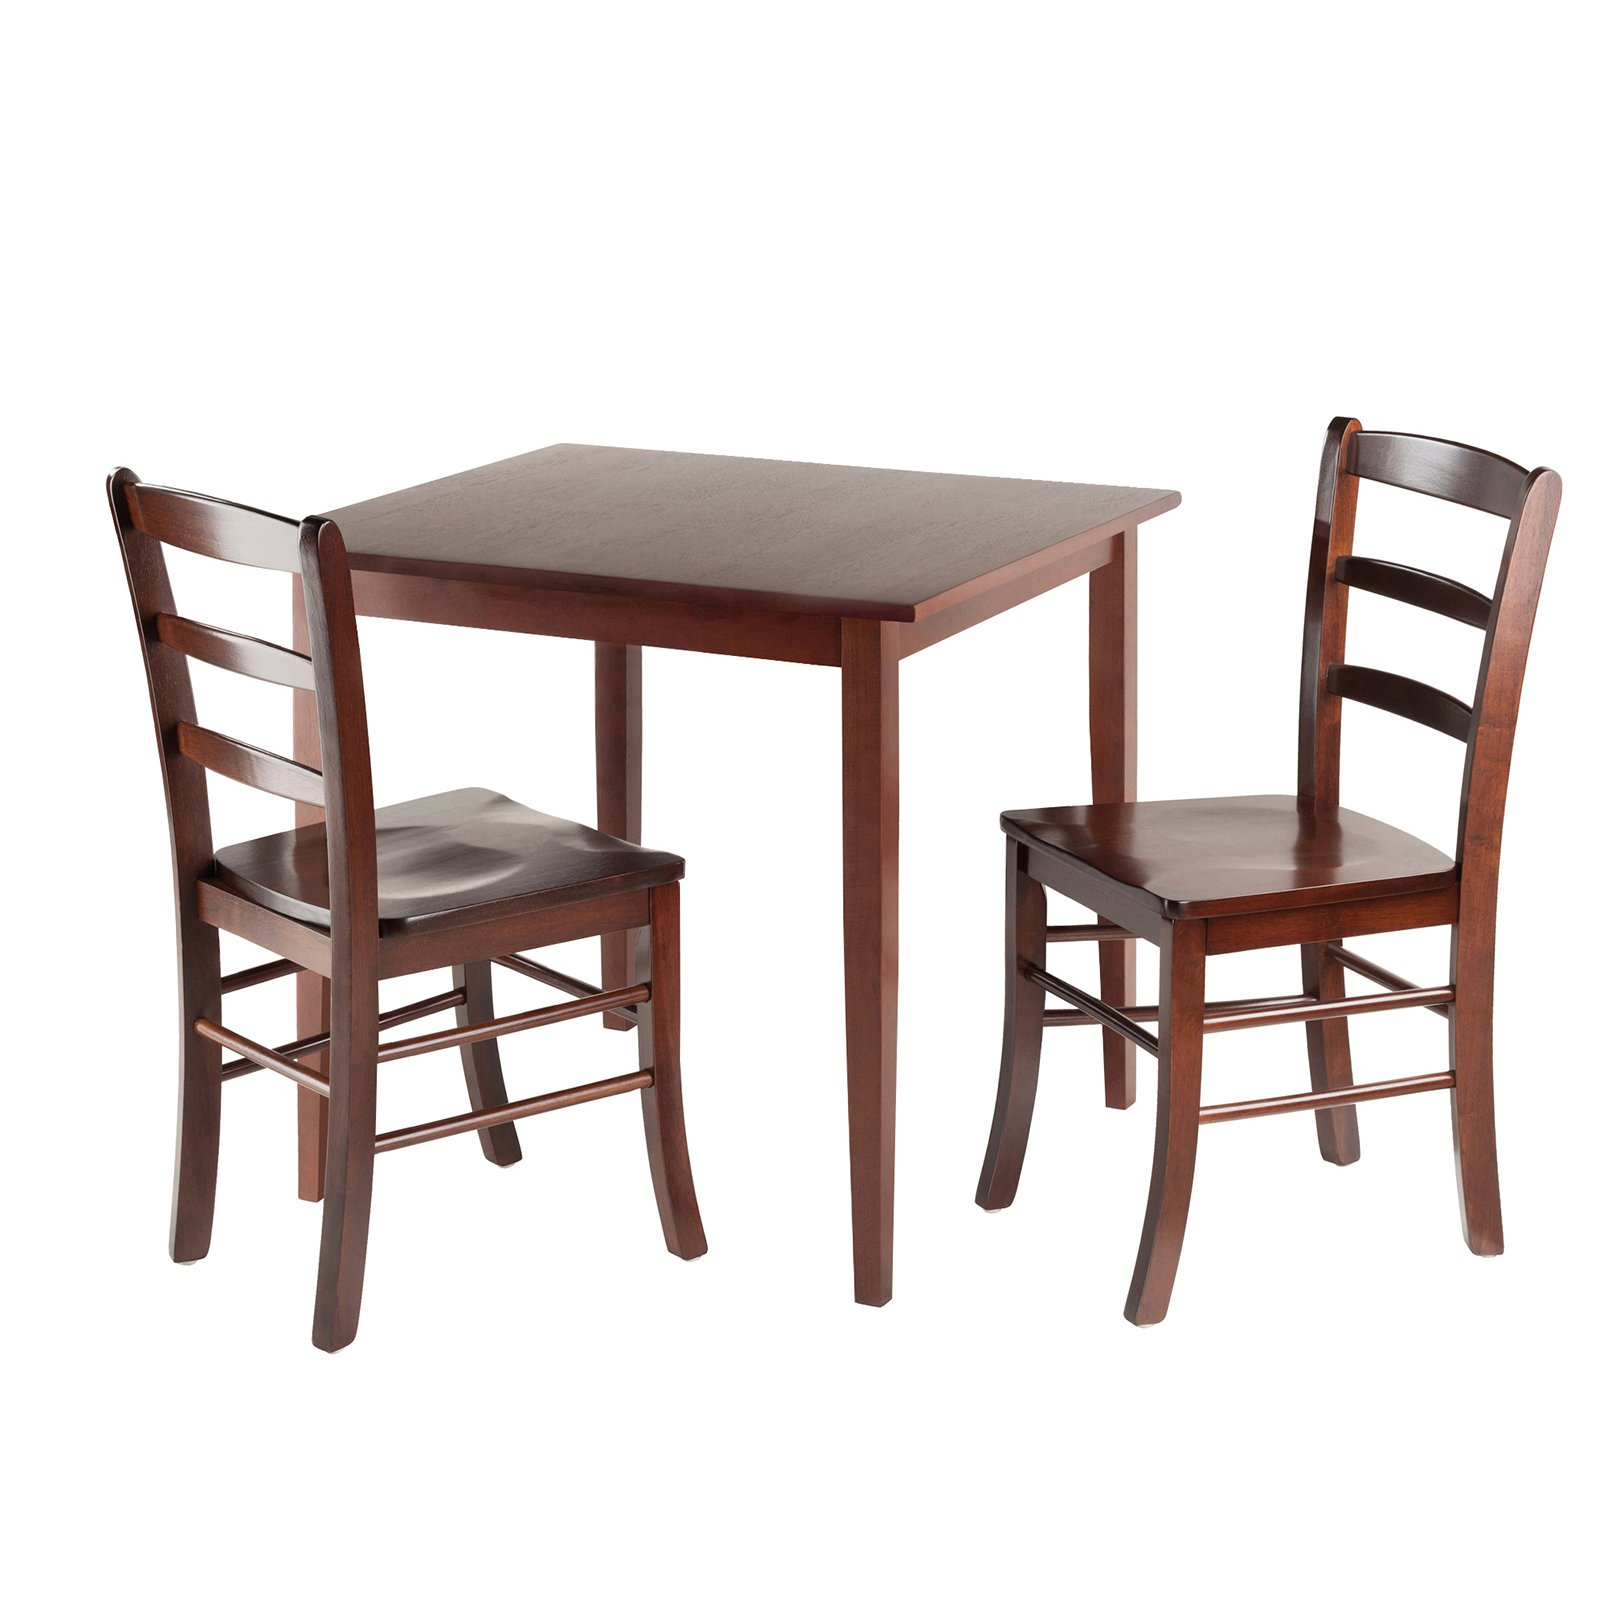 Square Kitchen Table And Chairs – Furniture & Interior Intended For Latest Winsome 3 Piece Counter Height Dining Sets (View 13 of 20)